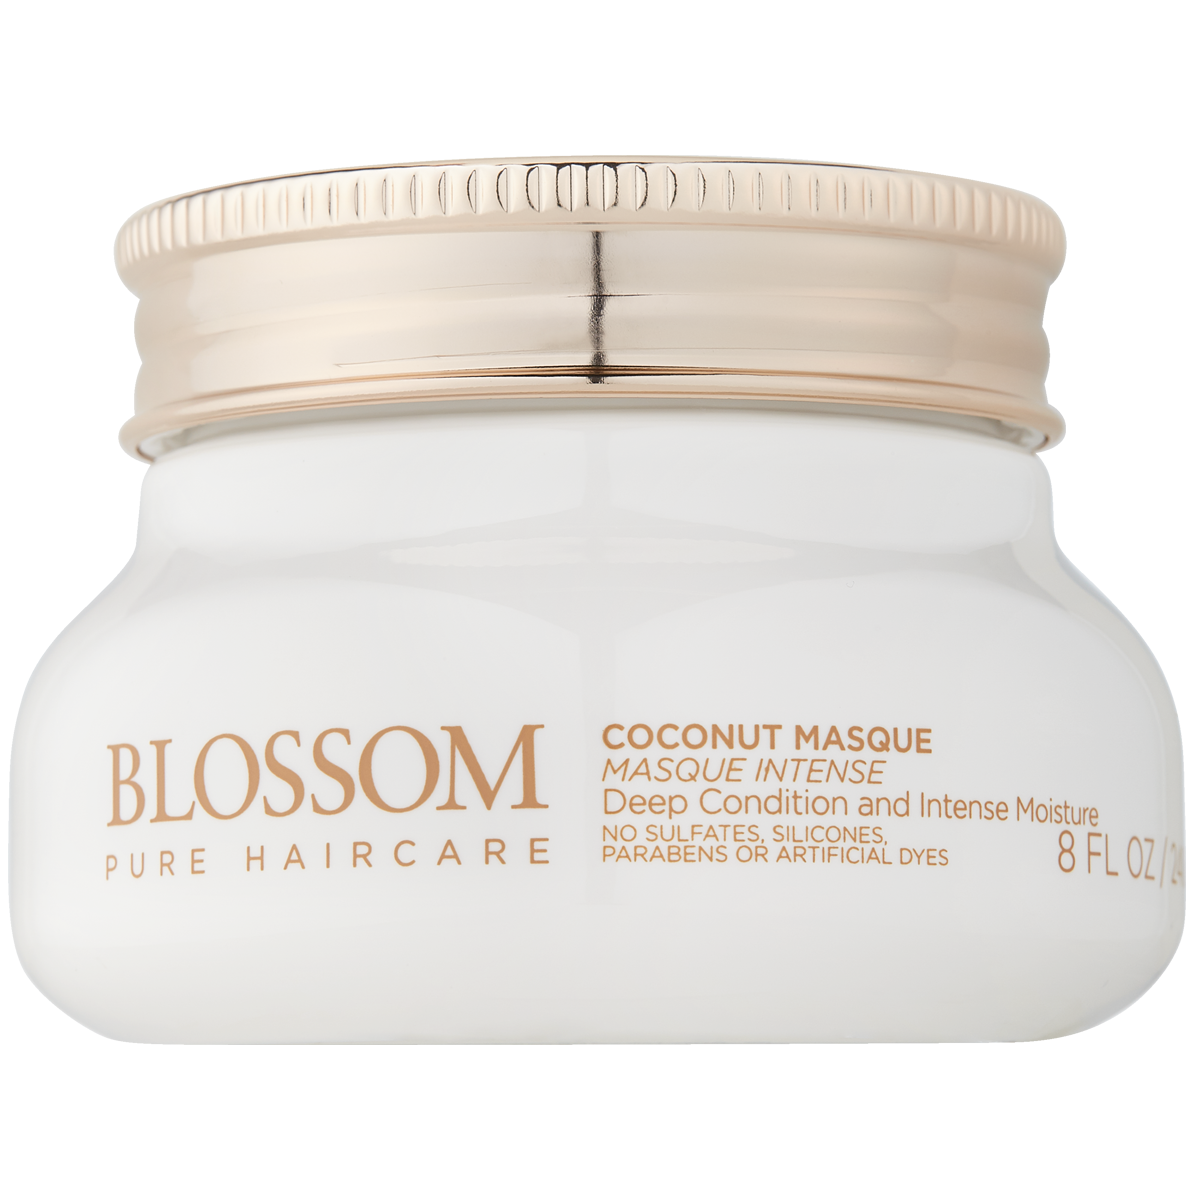 Blossom Pure Haircare Coconut Masque